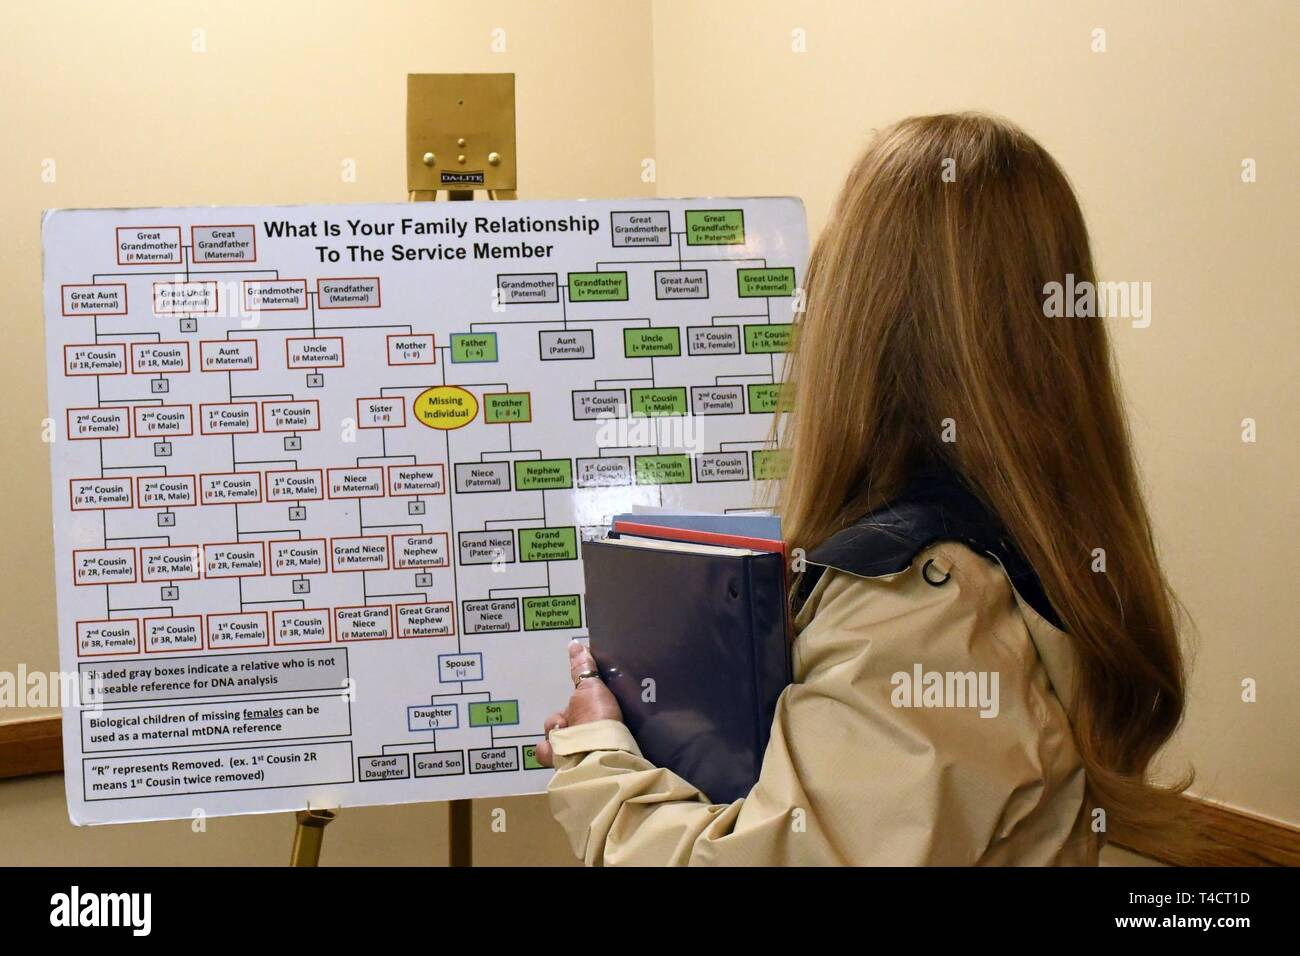 A family member reads a poster showing the different types of DNA connections that can be used to make an identification during a family member update (FMU) in San Antonio, Texas, March 23, 2019. The Defense POW/MIA Accounting Agency (DPAA), provides periodic updates and hosts annual government briefings for families of Americans who are missing from past conflicts. - Stock Image